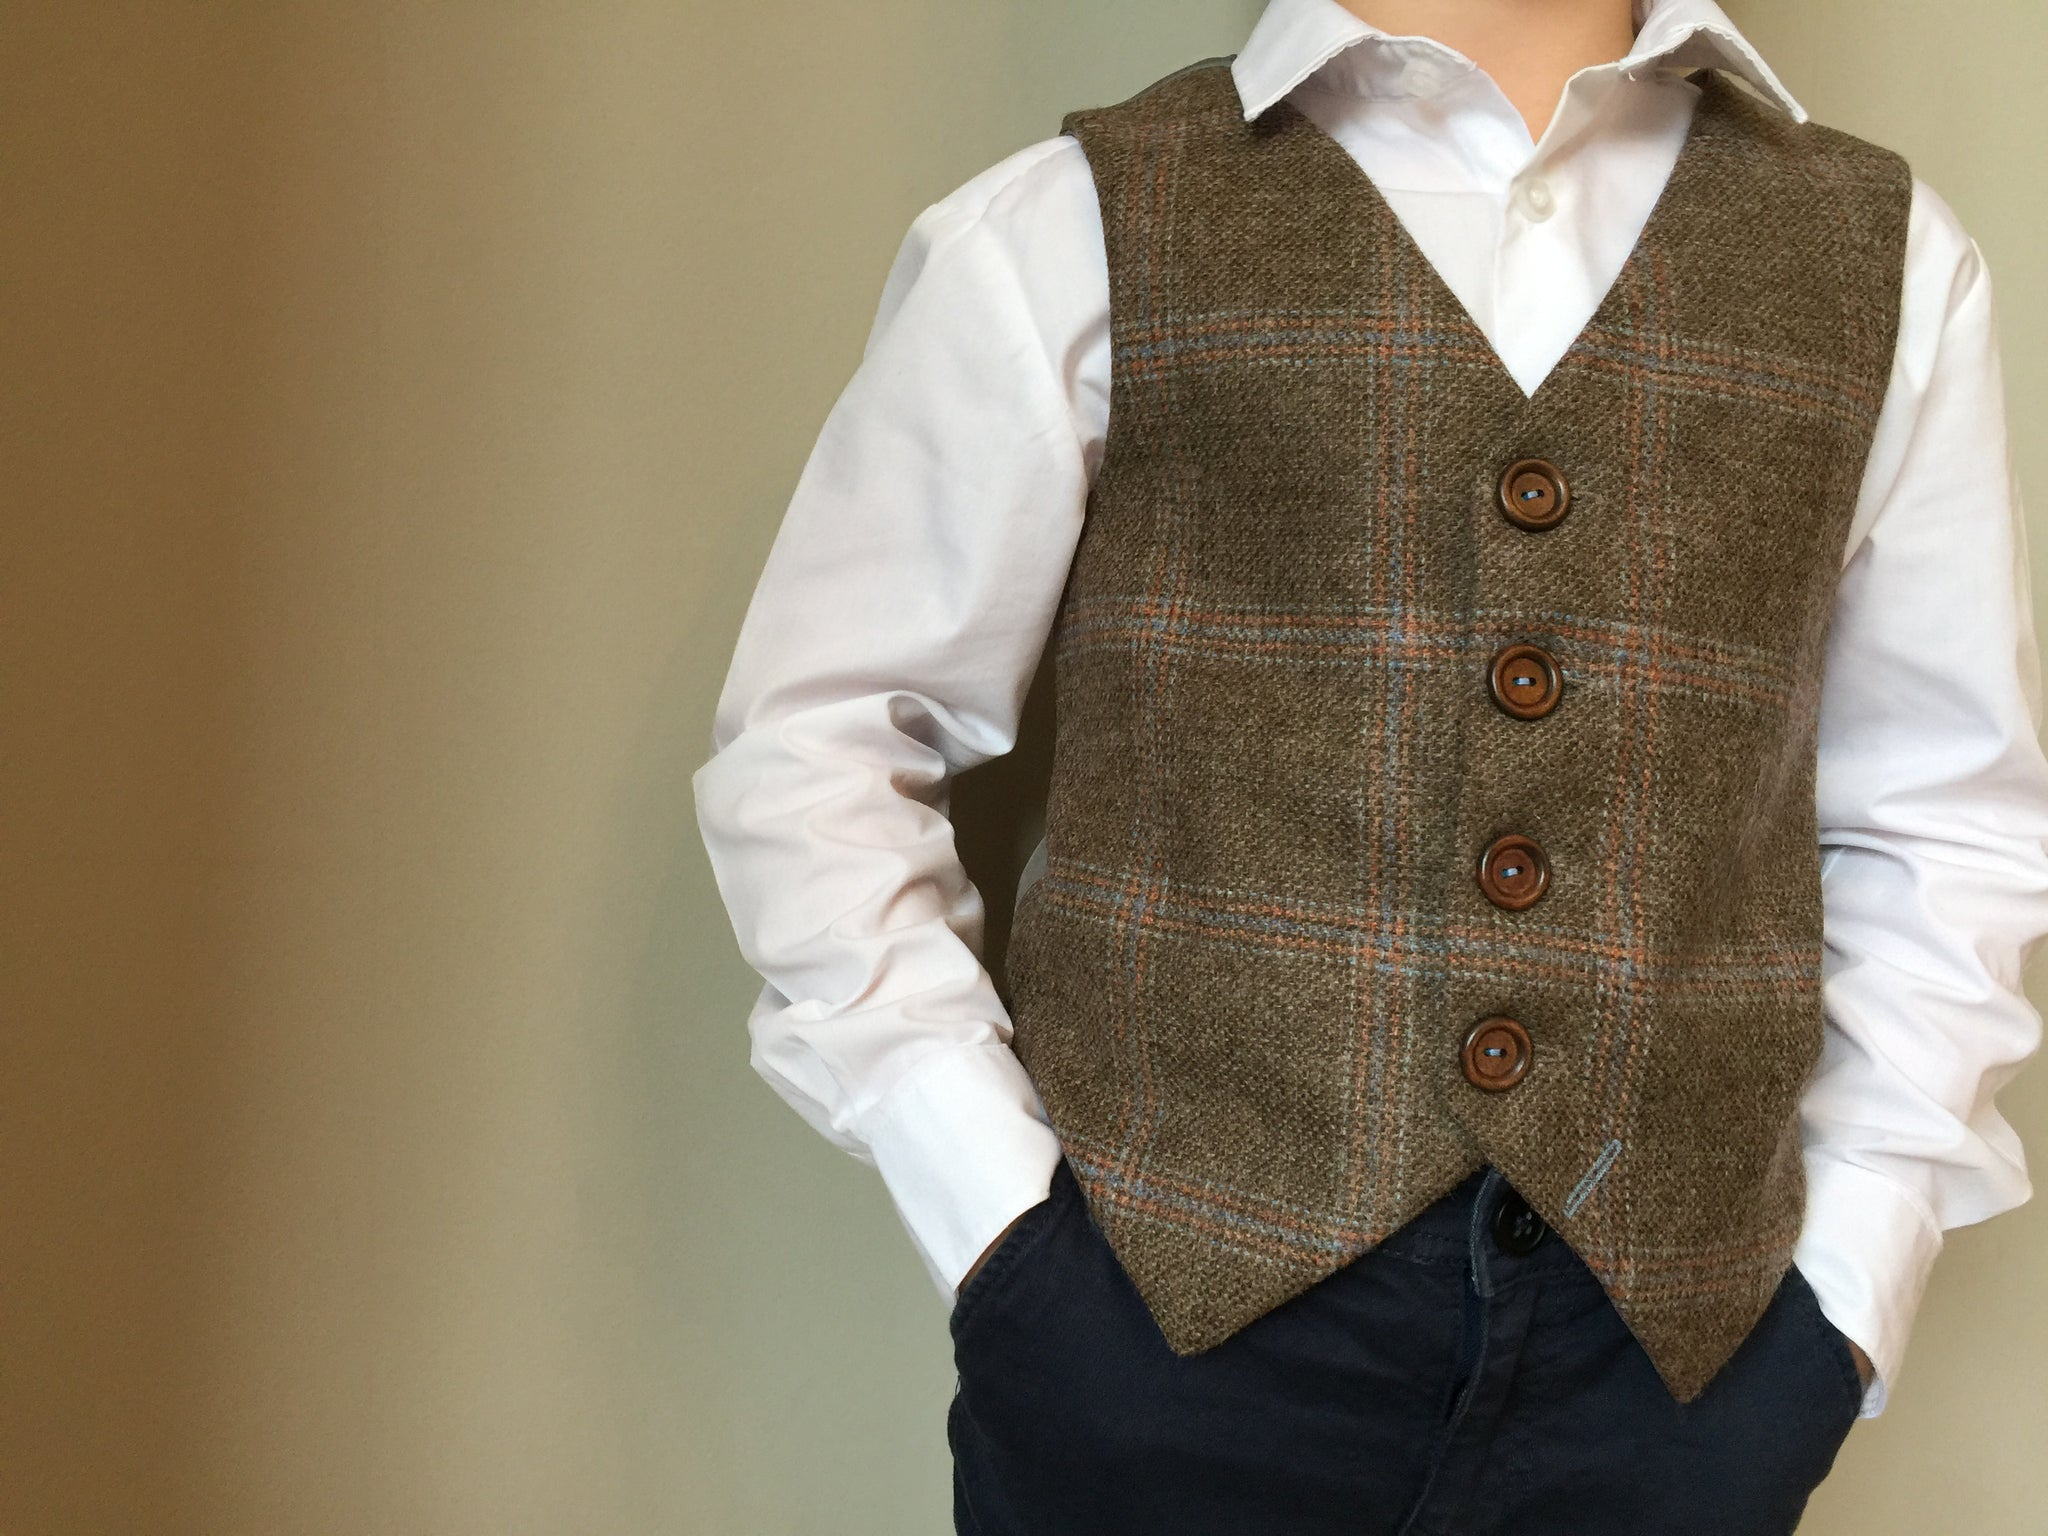 Sample 'William Blake' 6-7 years boys waistcoat handmade in a soft brown British tweed